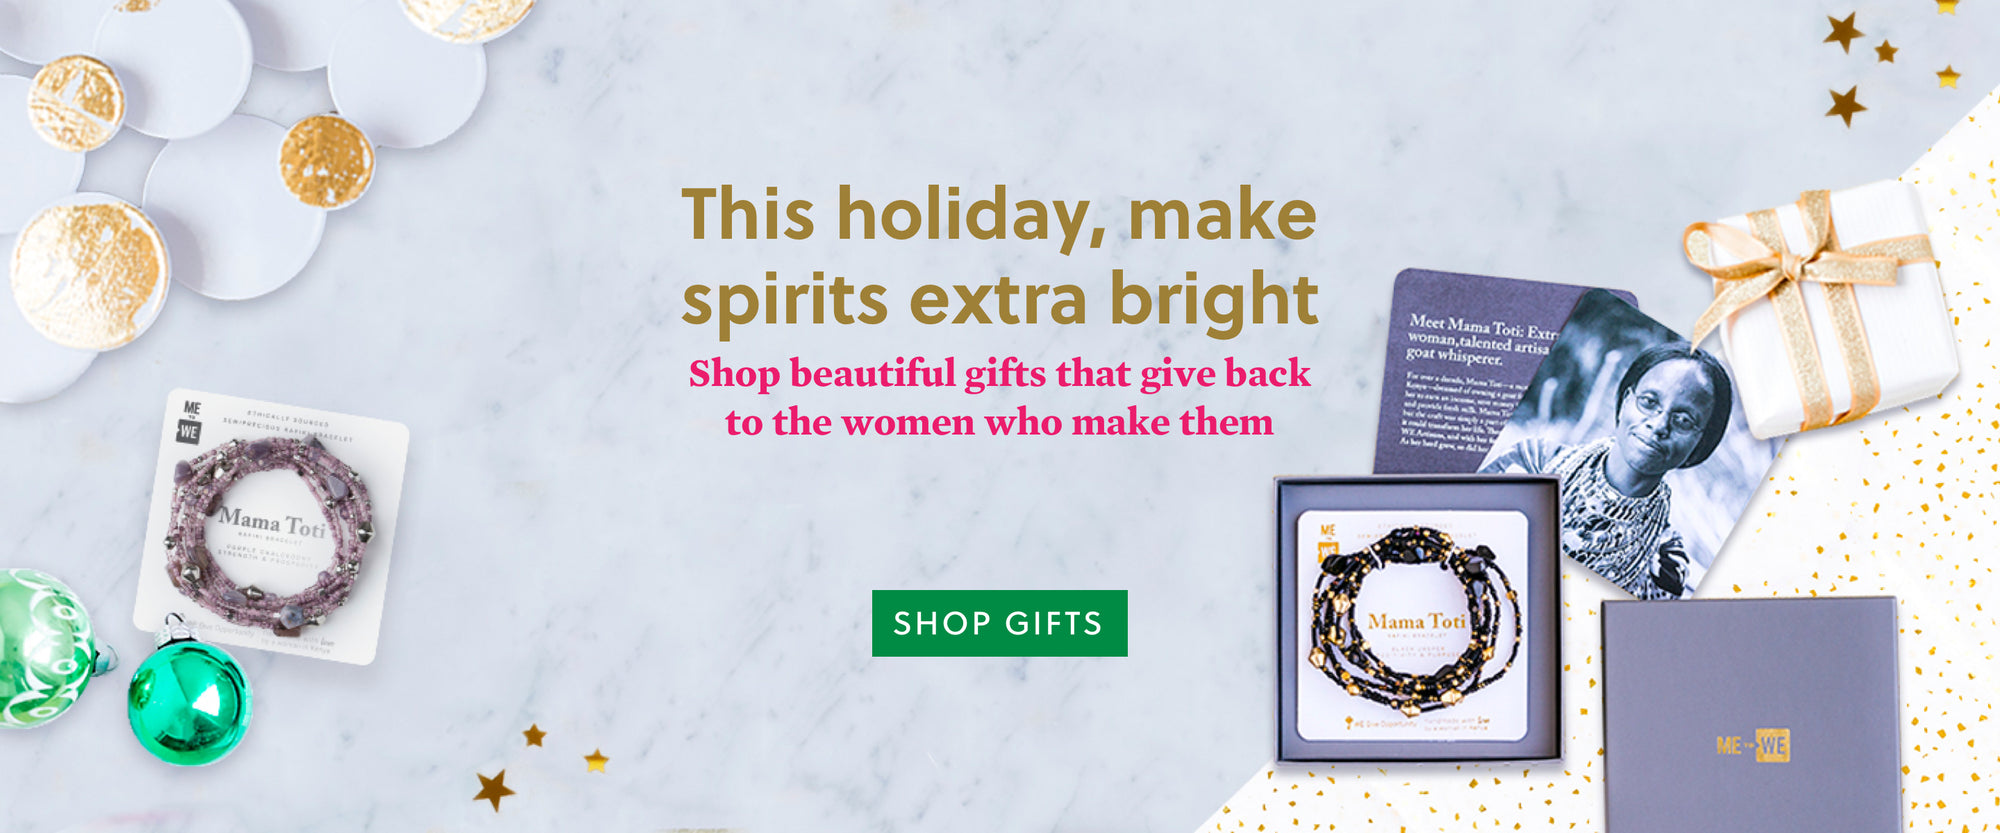 This holiday, make spirits extra bright Shop beautiful gifts that give back to the women who make them - Shop Gifts